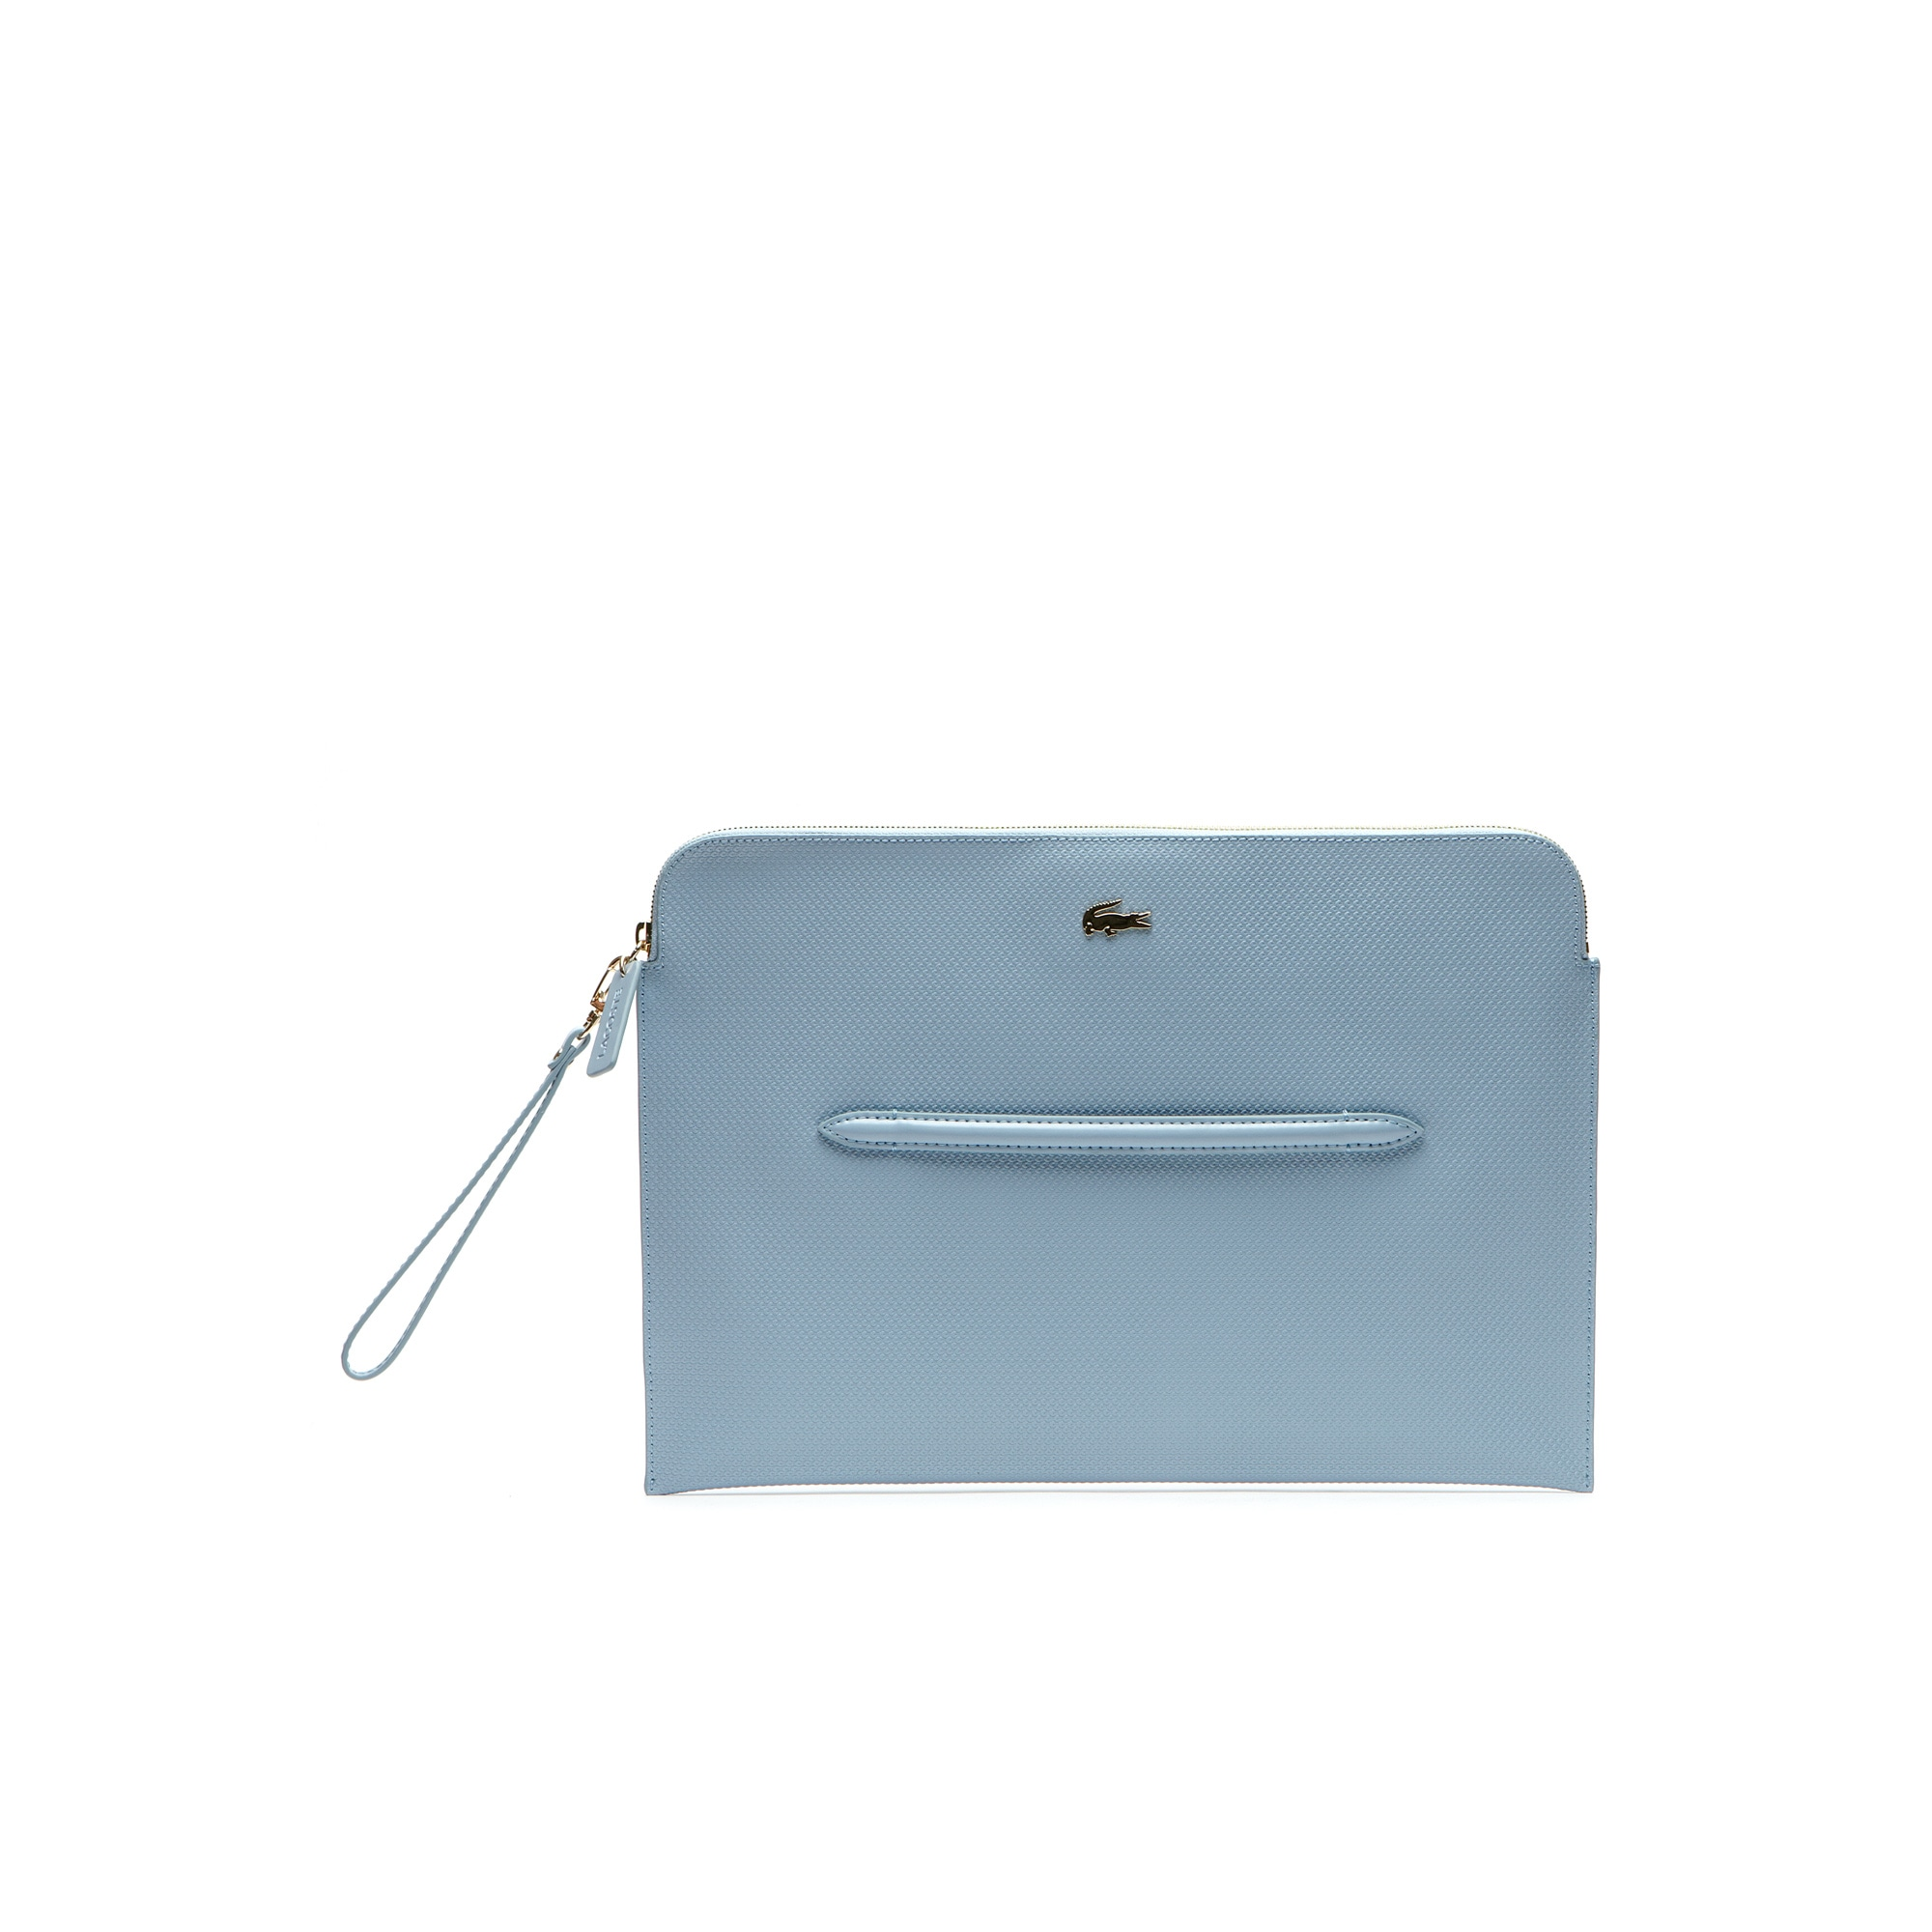 Chantaco zippered clutch in coated leather